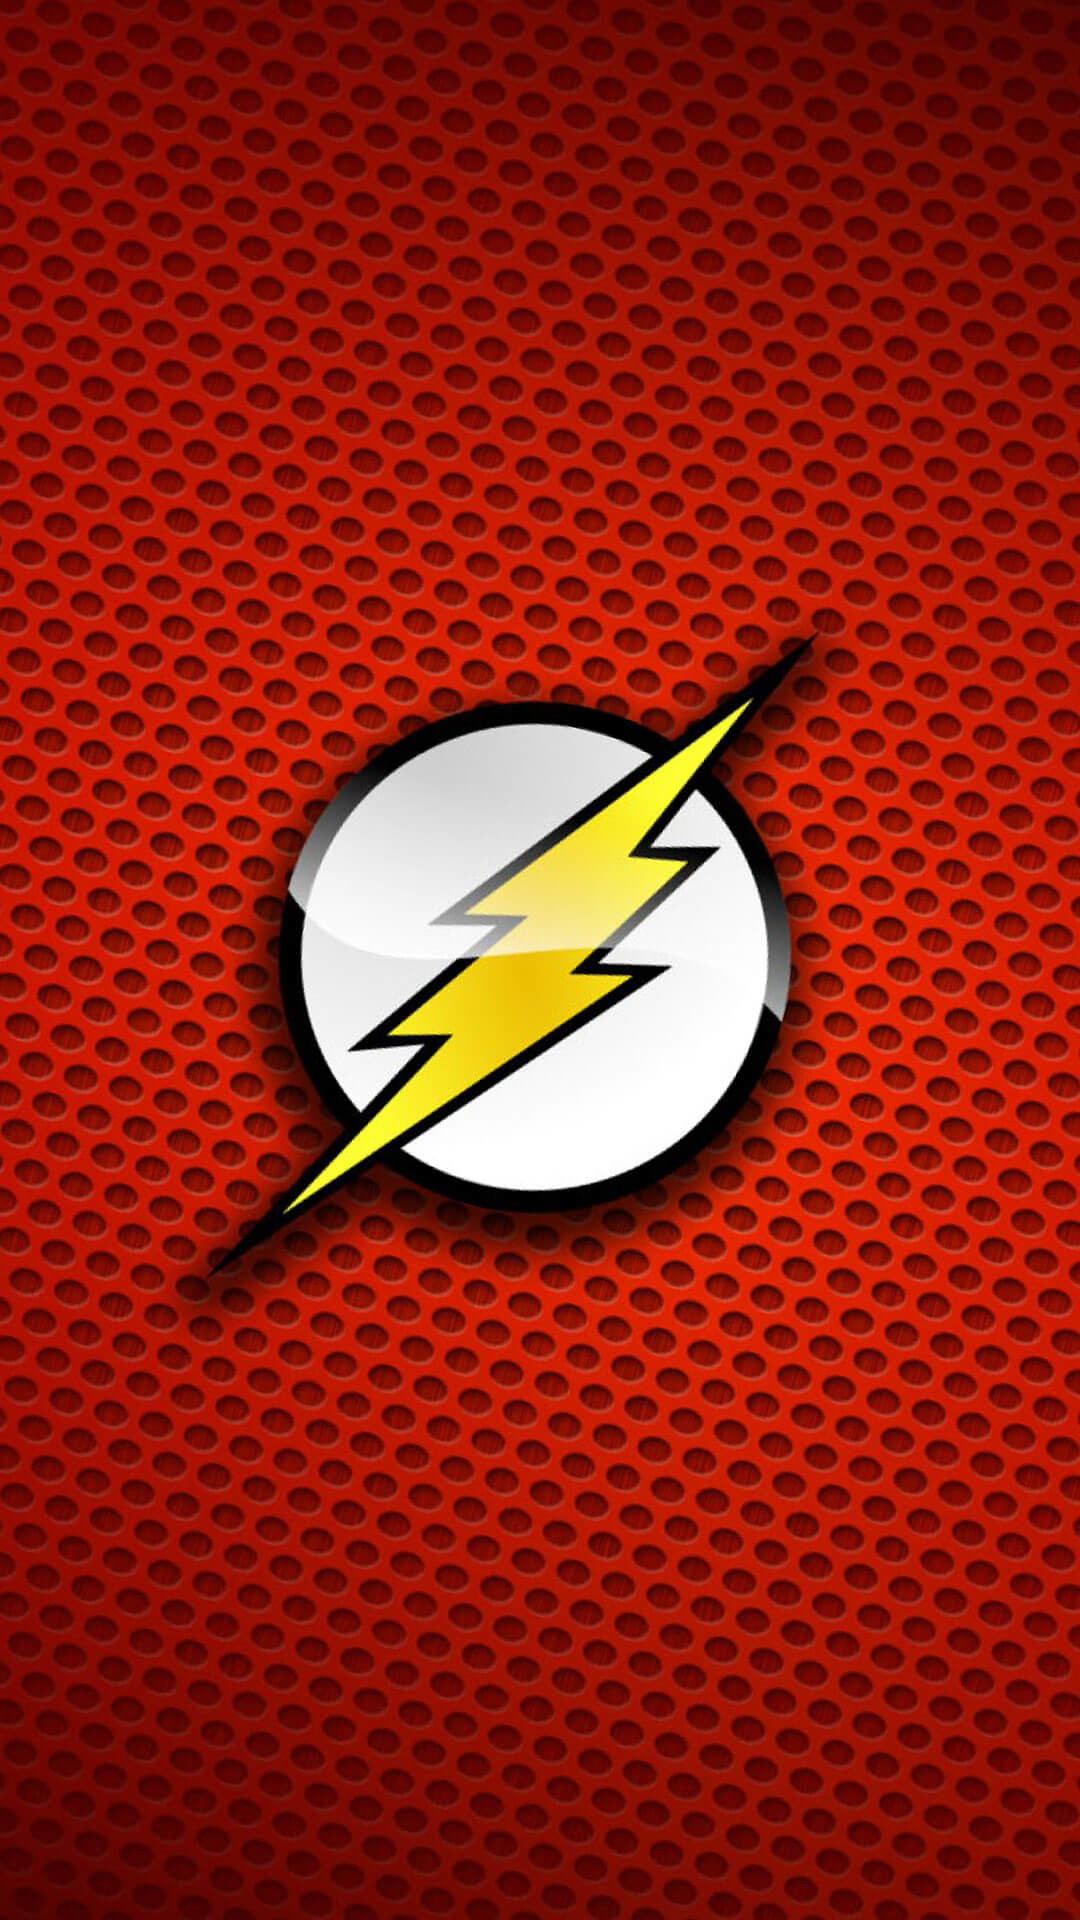 The flash wallpaper hd 82 images for Fondos 3d iphone